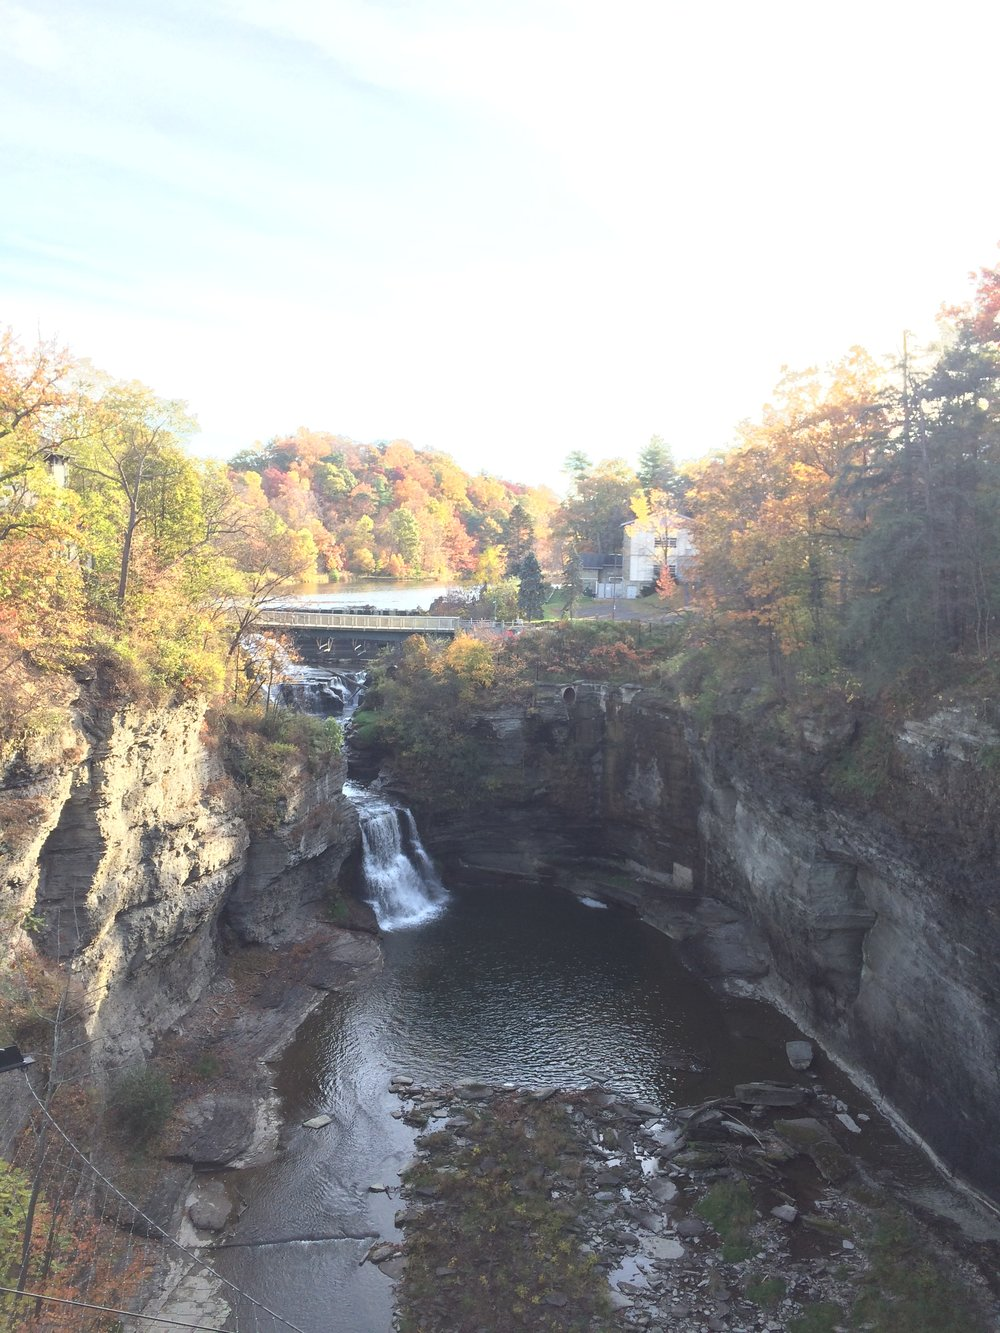 The gorges during my fall 2017 visit to Cornell.